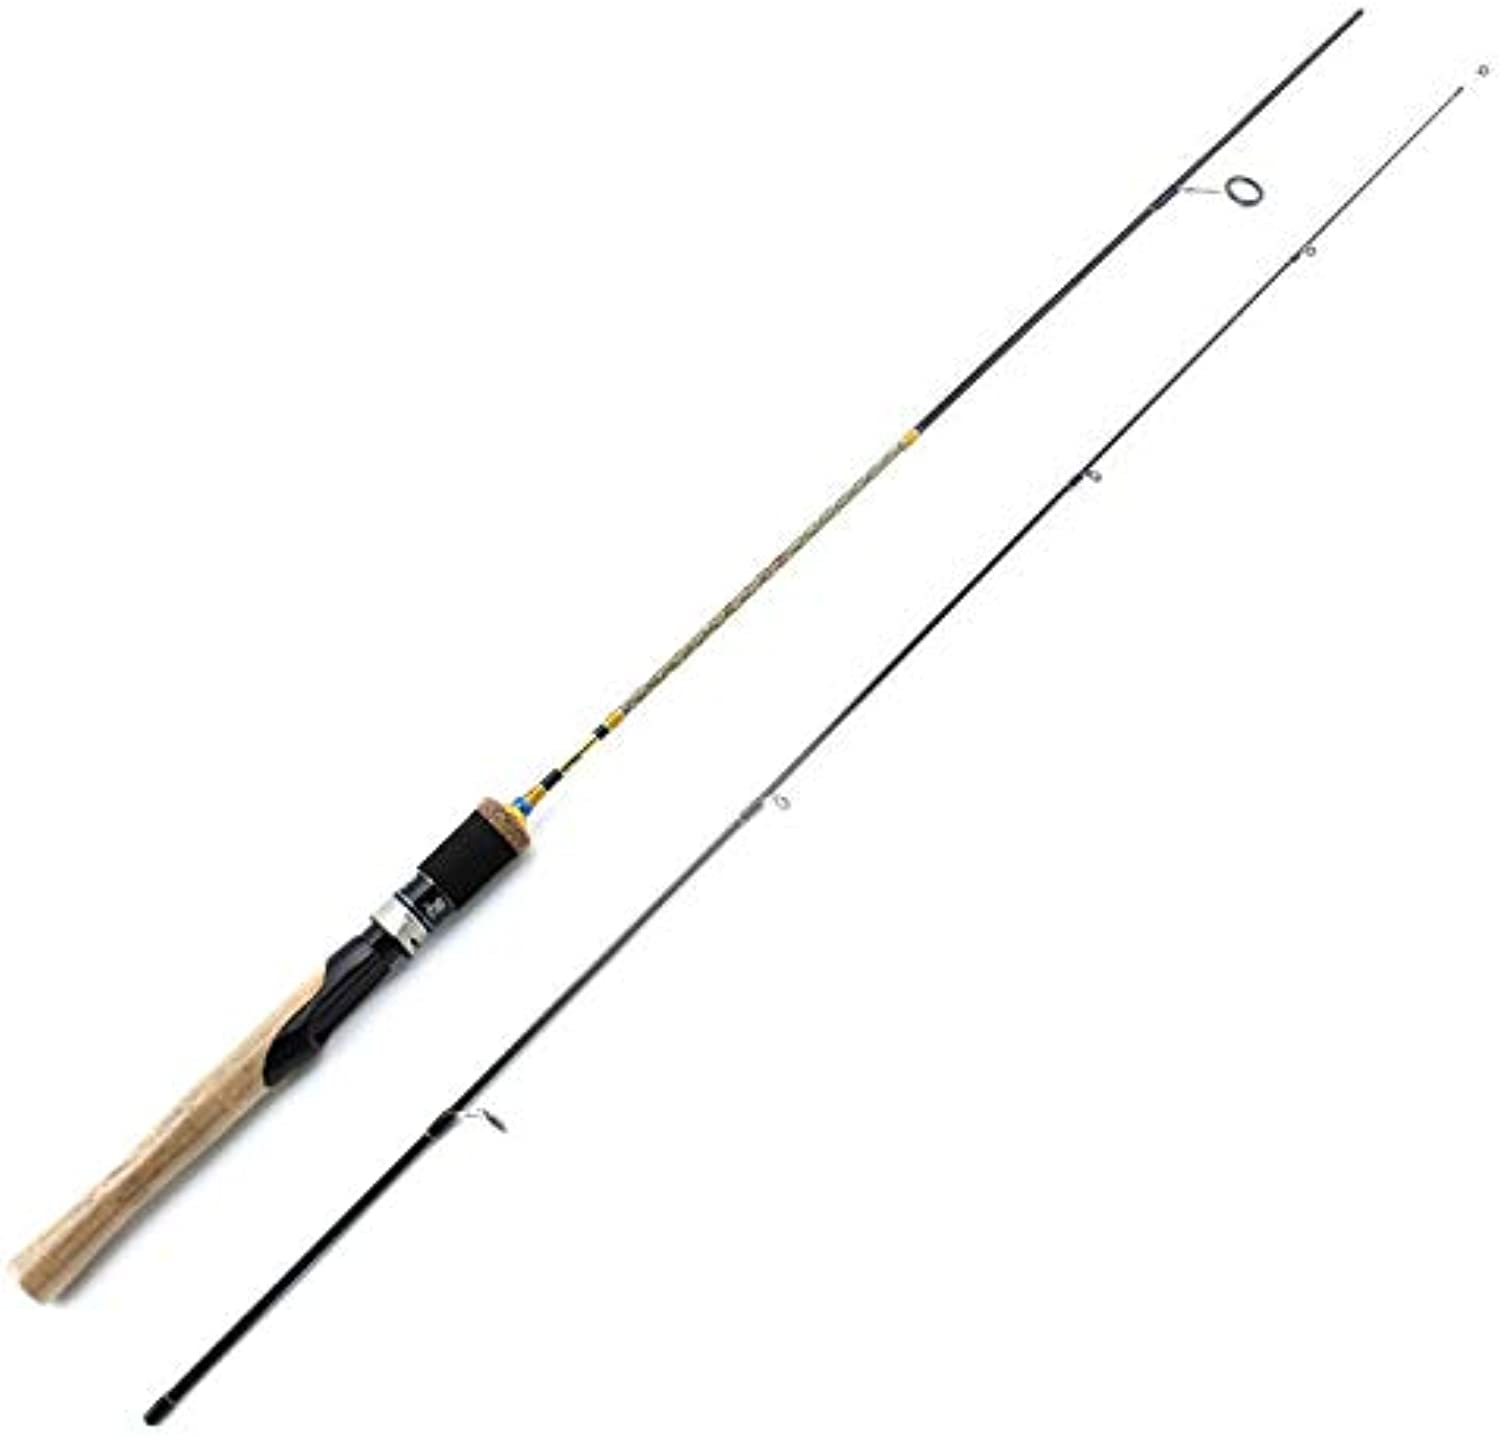 FISHYY Angelrute 1.68m 1.8M 1.98m UL-Power-Spinnrute 2 Sek. Carbon Lure wt 2-8g Angelrute-Spinnerei Schnell Ultraleicht Spinnrute